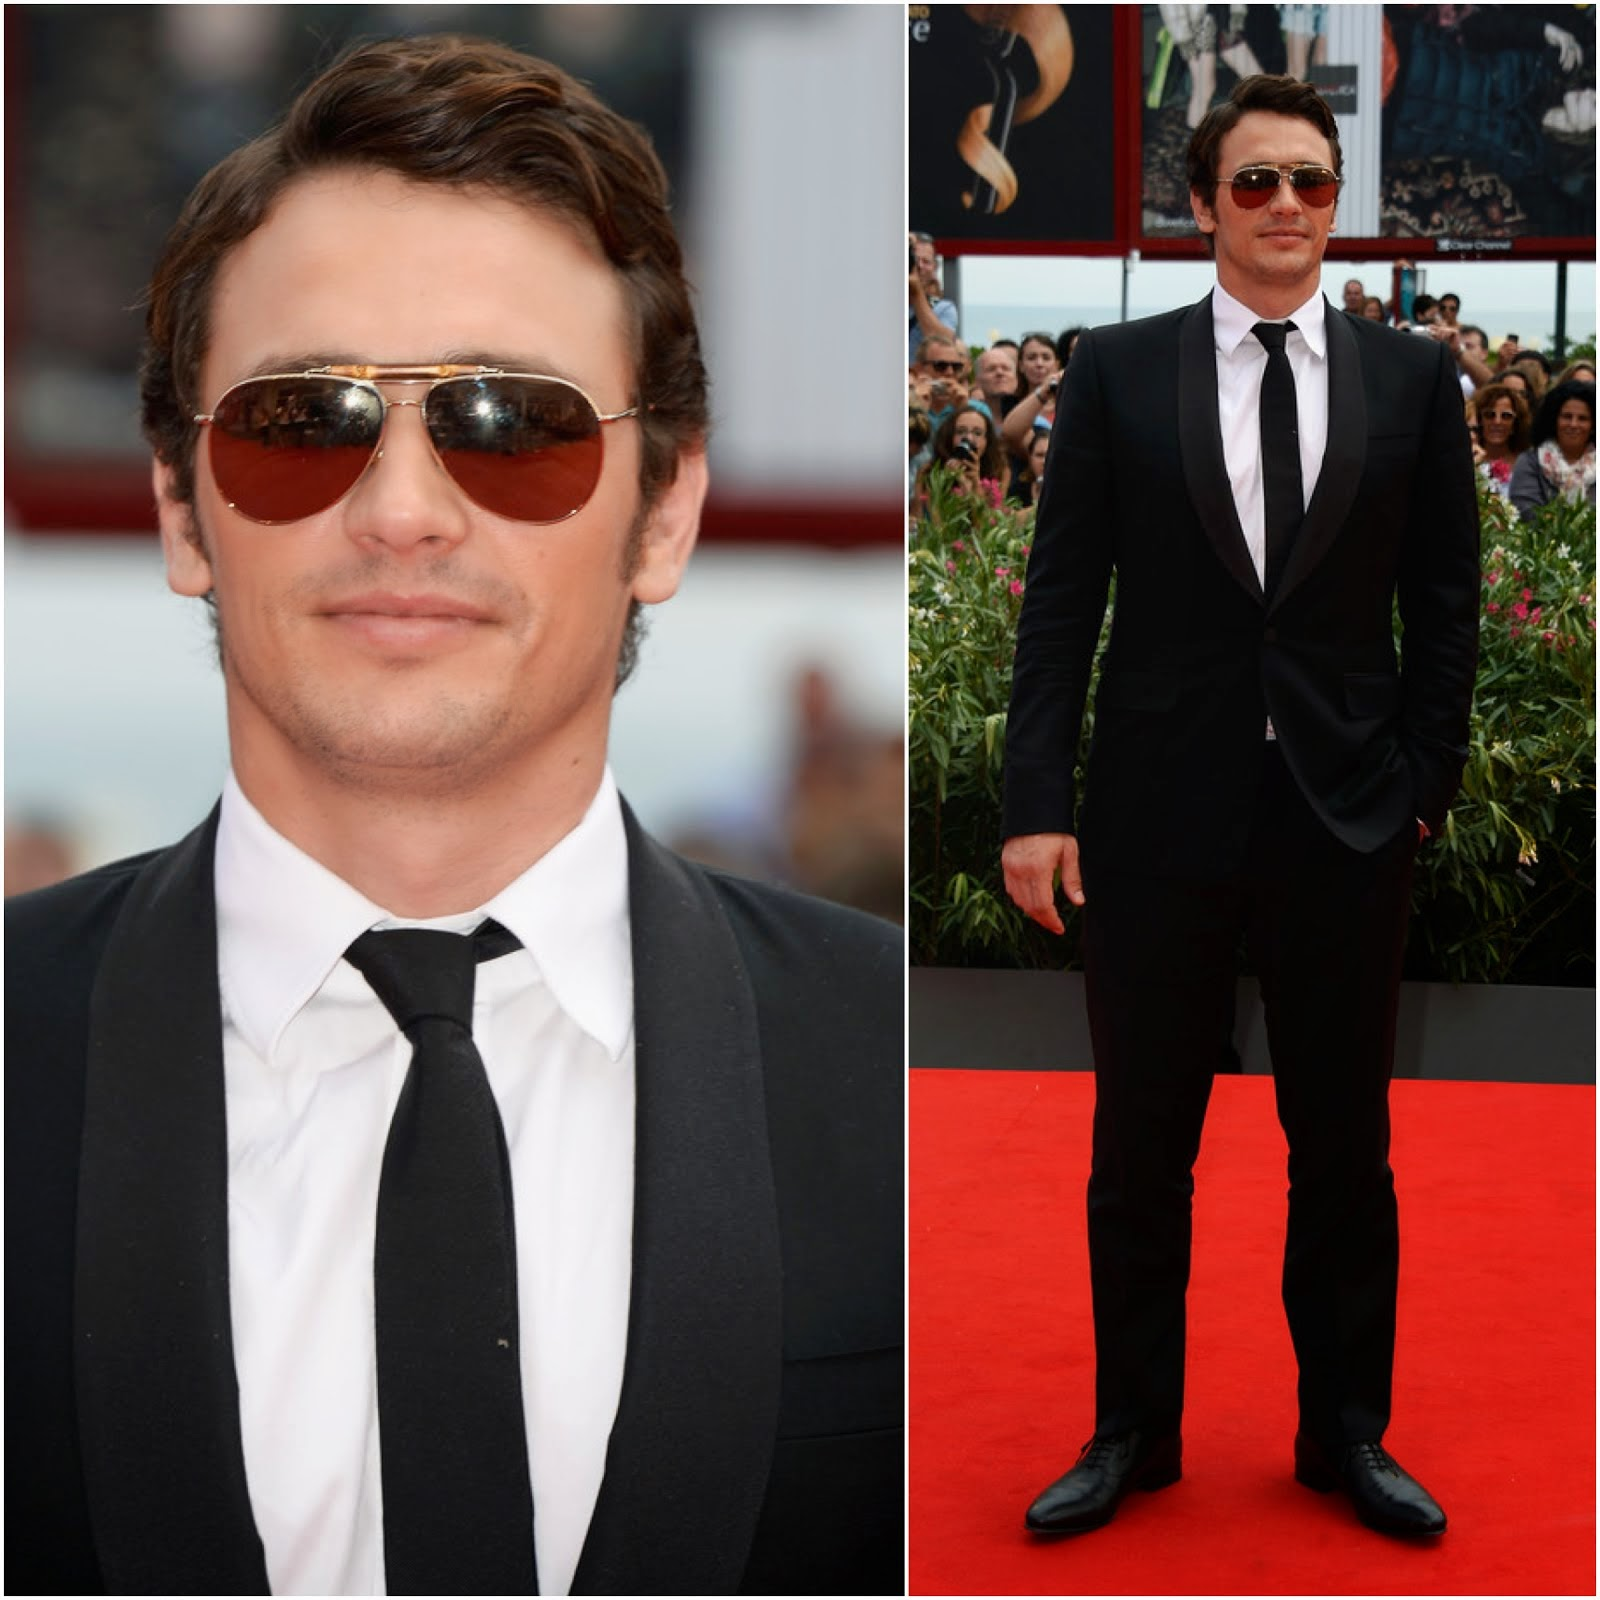 00O00 Menswear Blog: James Franco's Gucci bamboo aviator sunglasses - 'Palo Alto' Premiere, 70th Venice International Film Festival